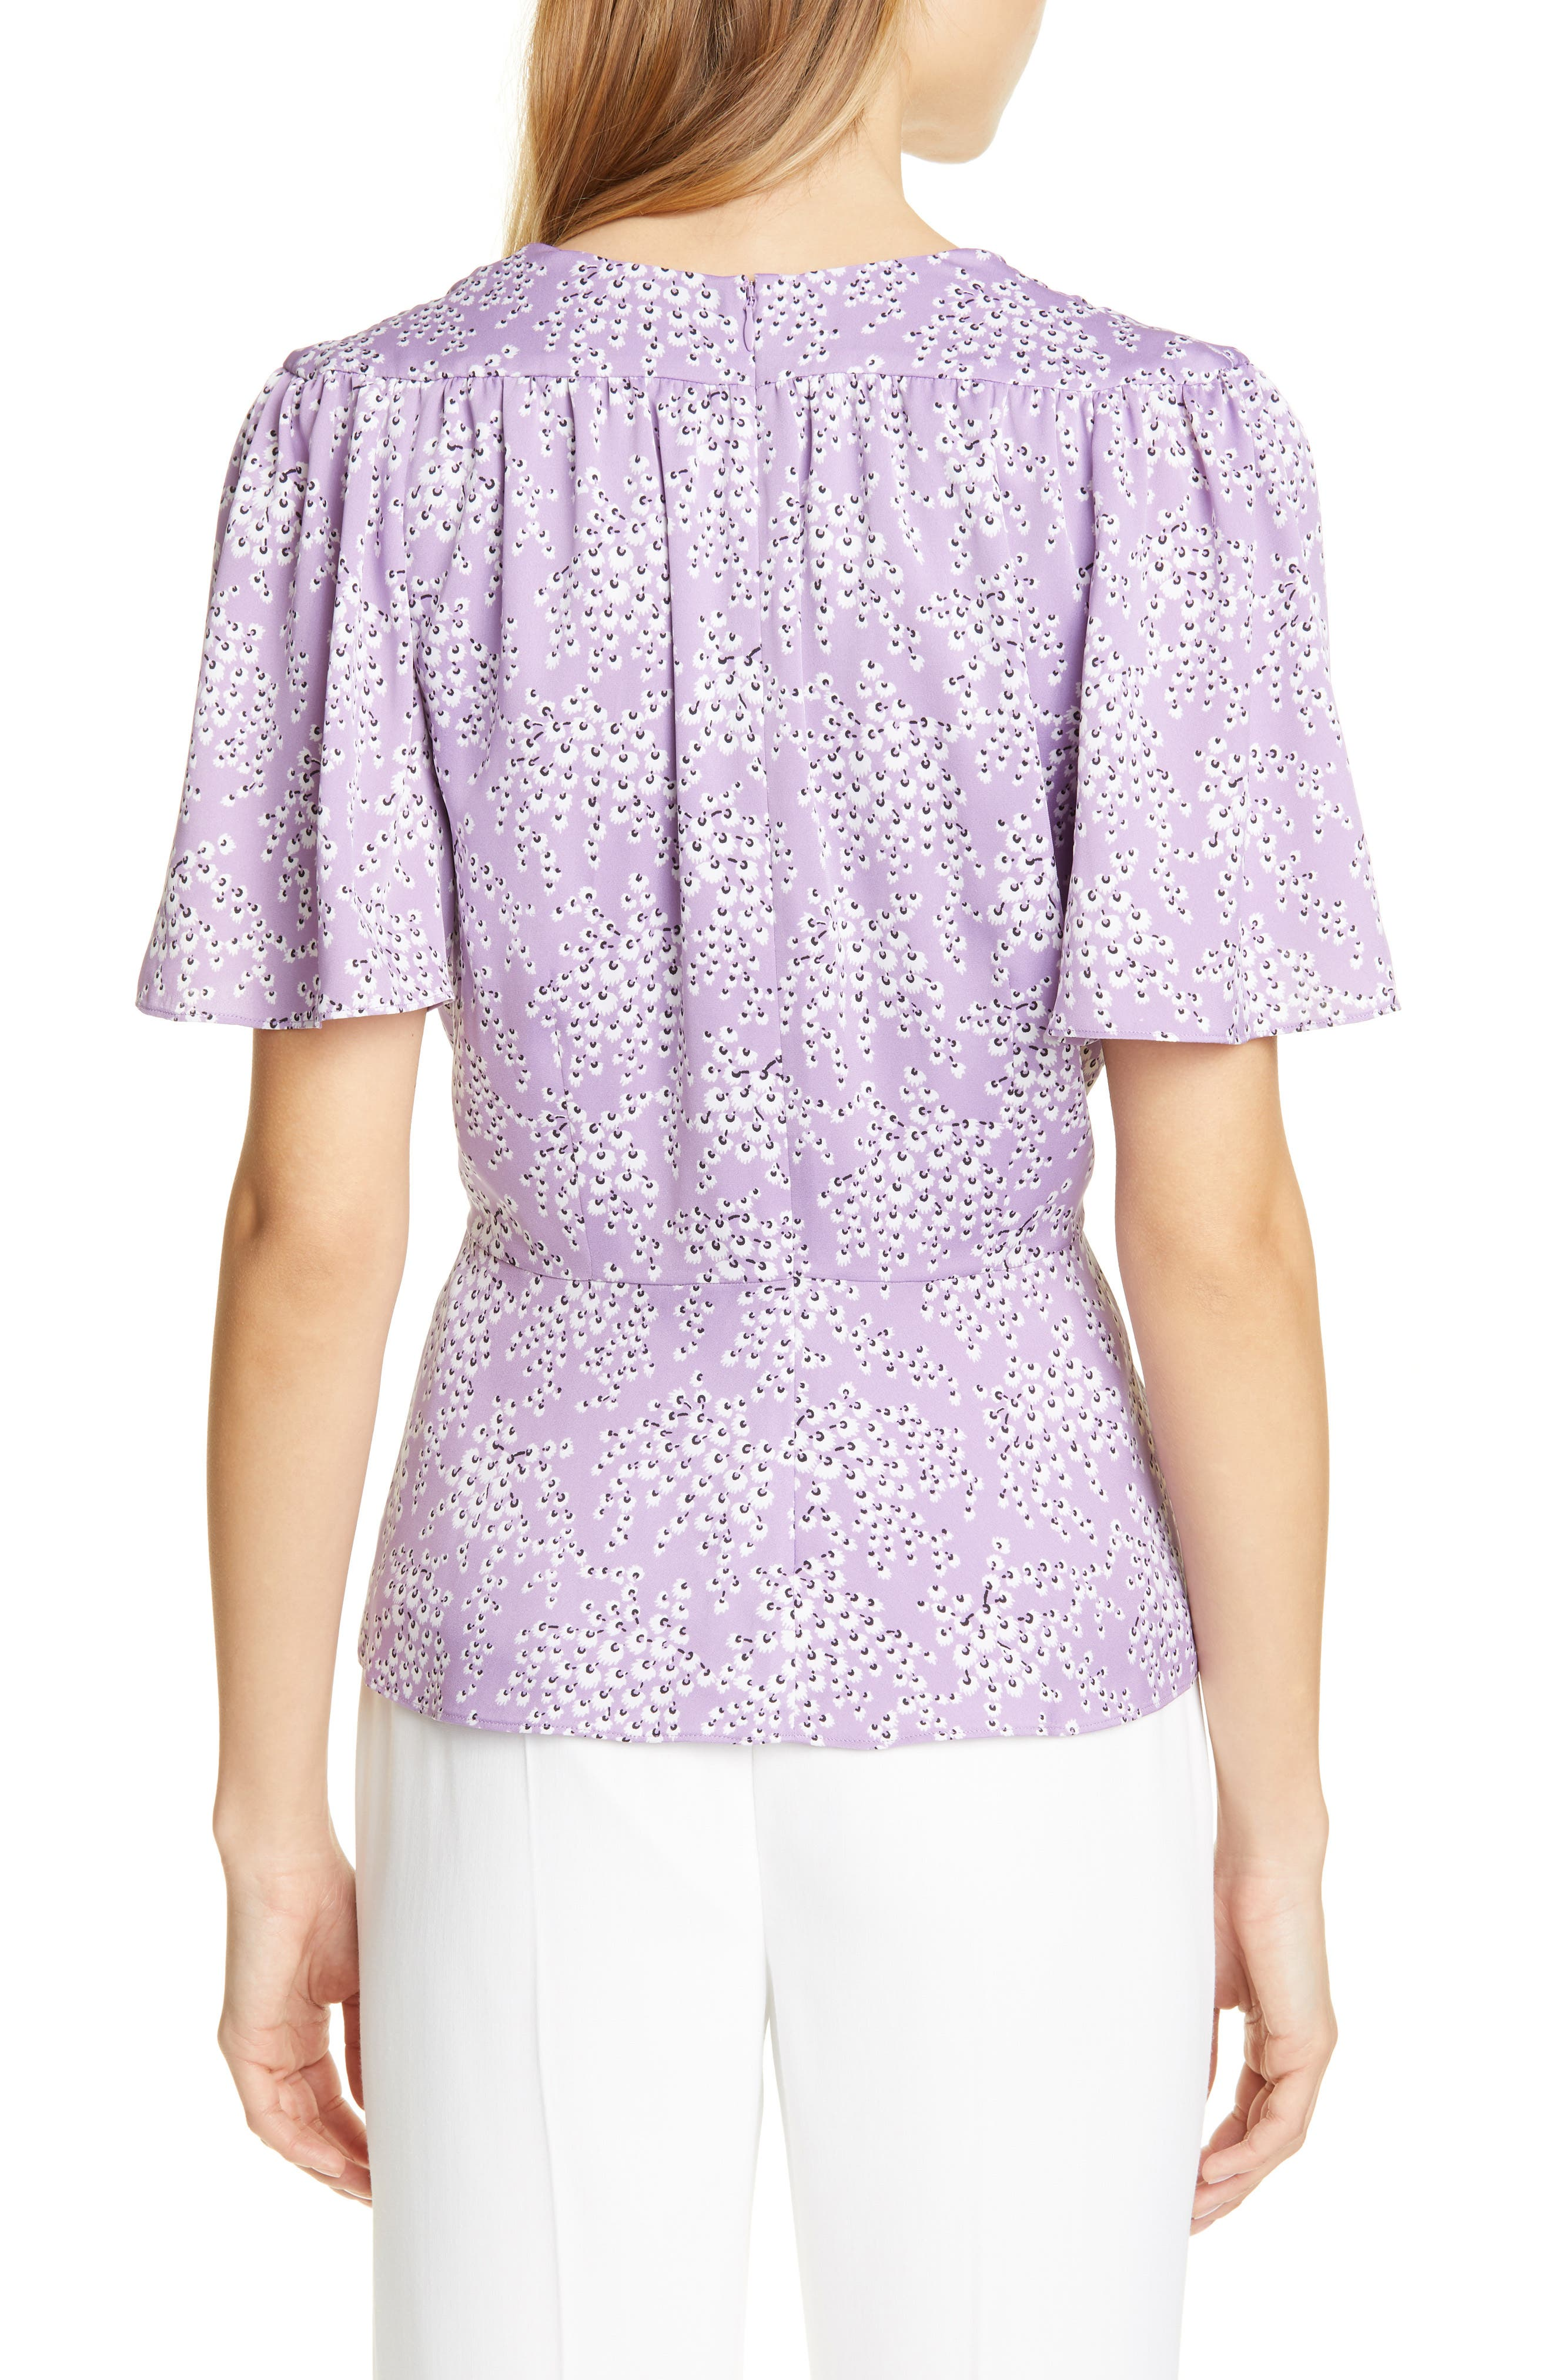 ab7f35154 Women's Lewit Tops | Nordstrom